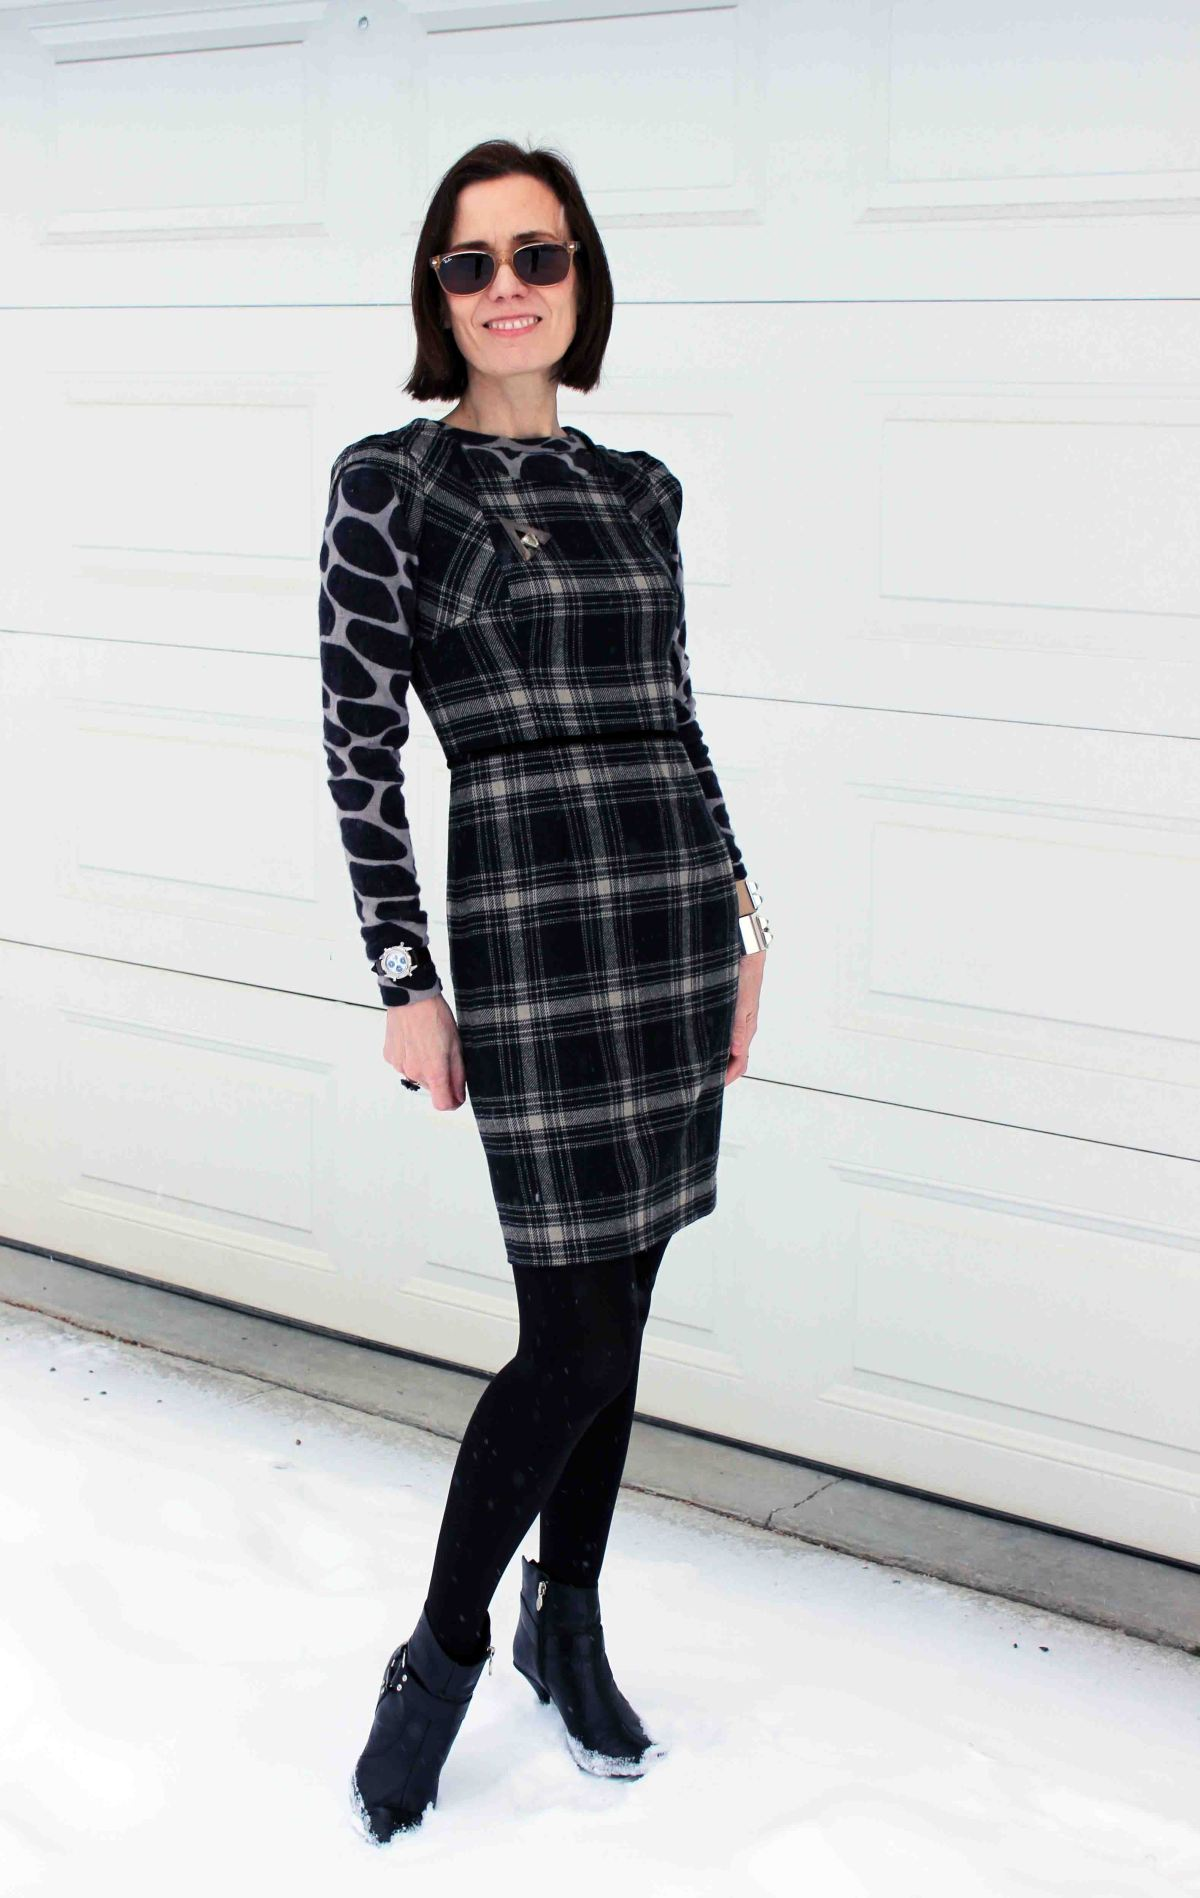 fashion blogger in black and gray outfit mixing giraffe print with plaid